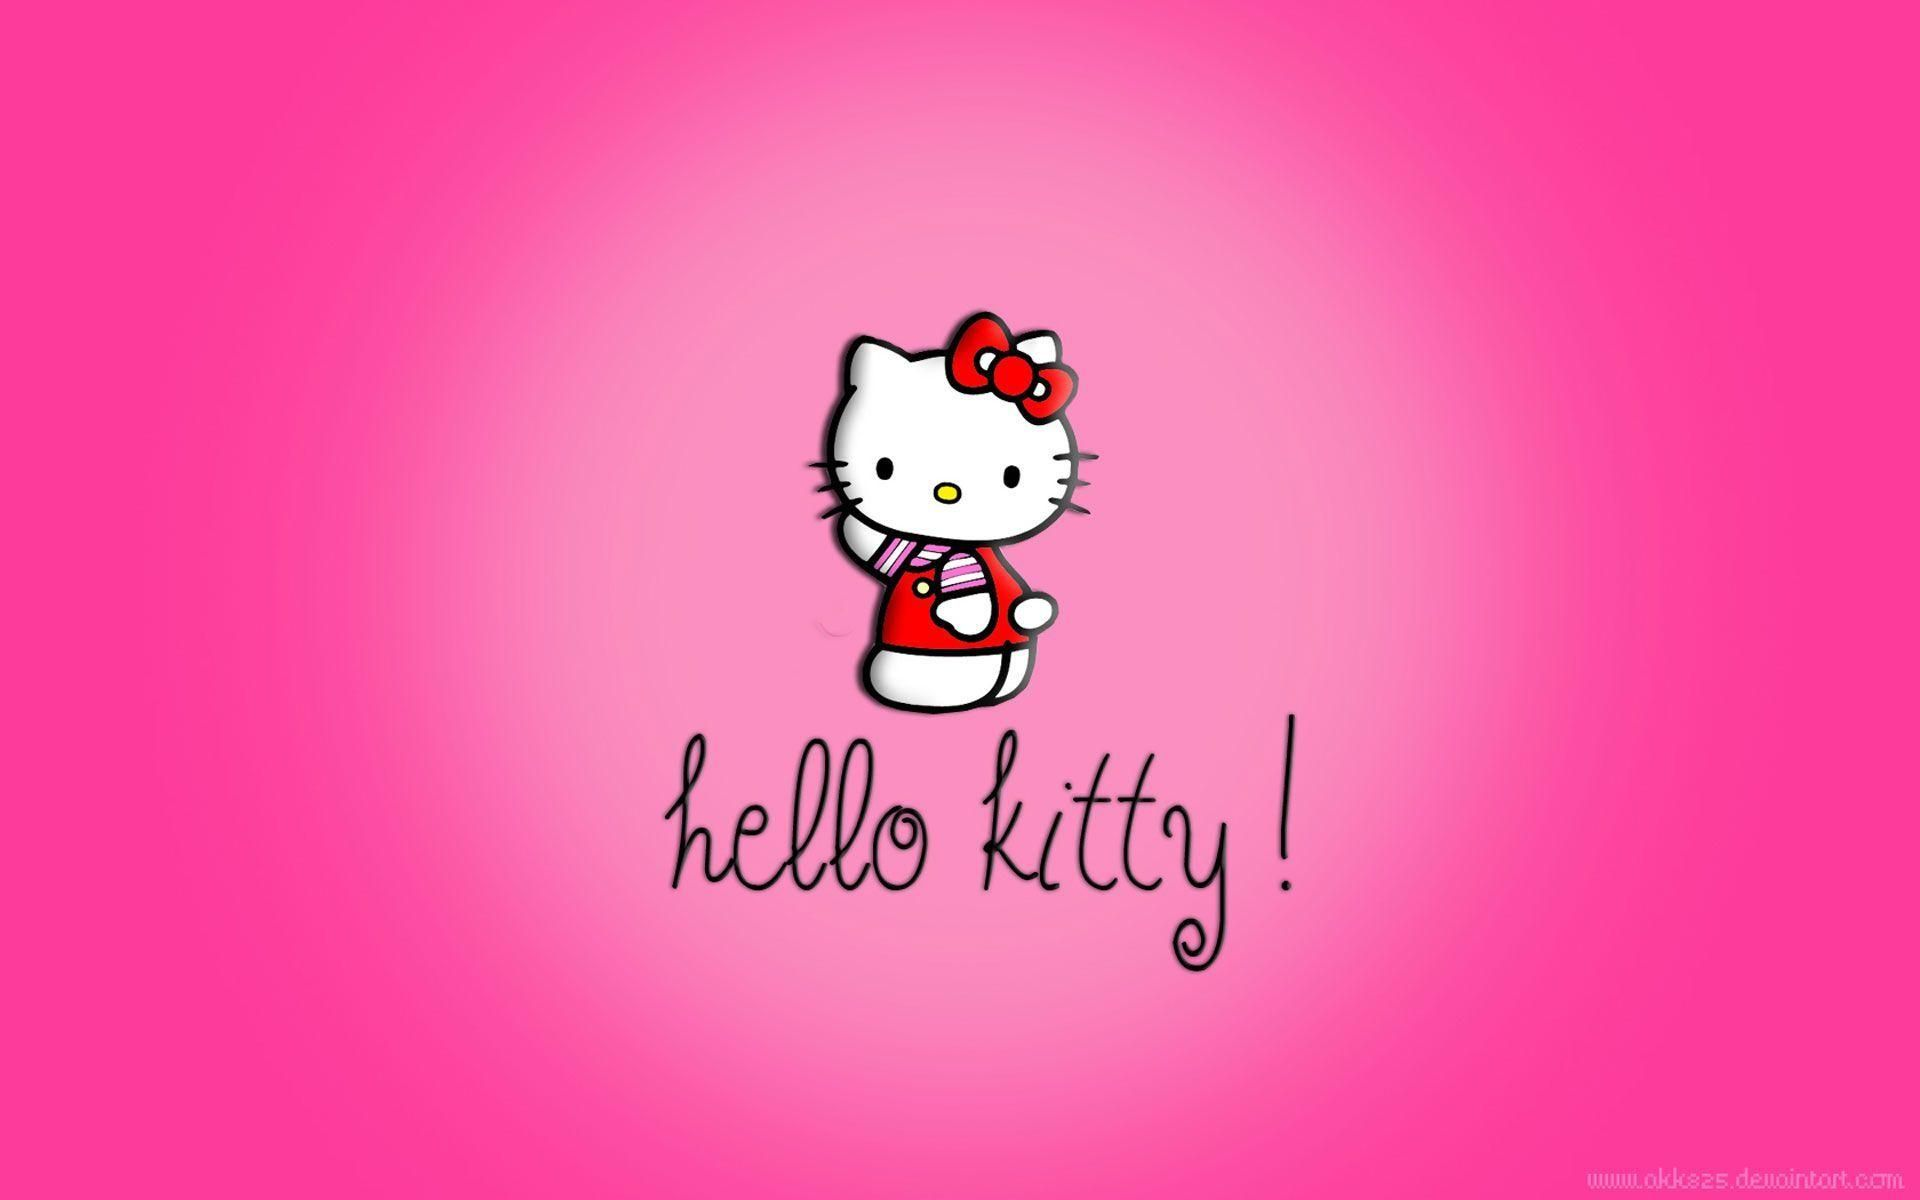 Download Free Hello Kitty Pink Wallpapers 1920x1200 Hello Kitty Wallpaper Free Hello Kitty Wallpaper Hd Hello Kitty Iphone Wallpaper